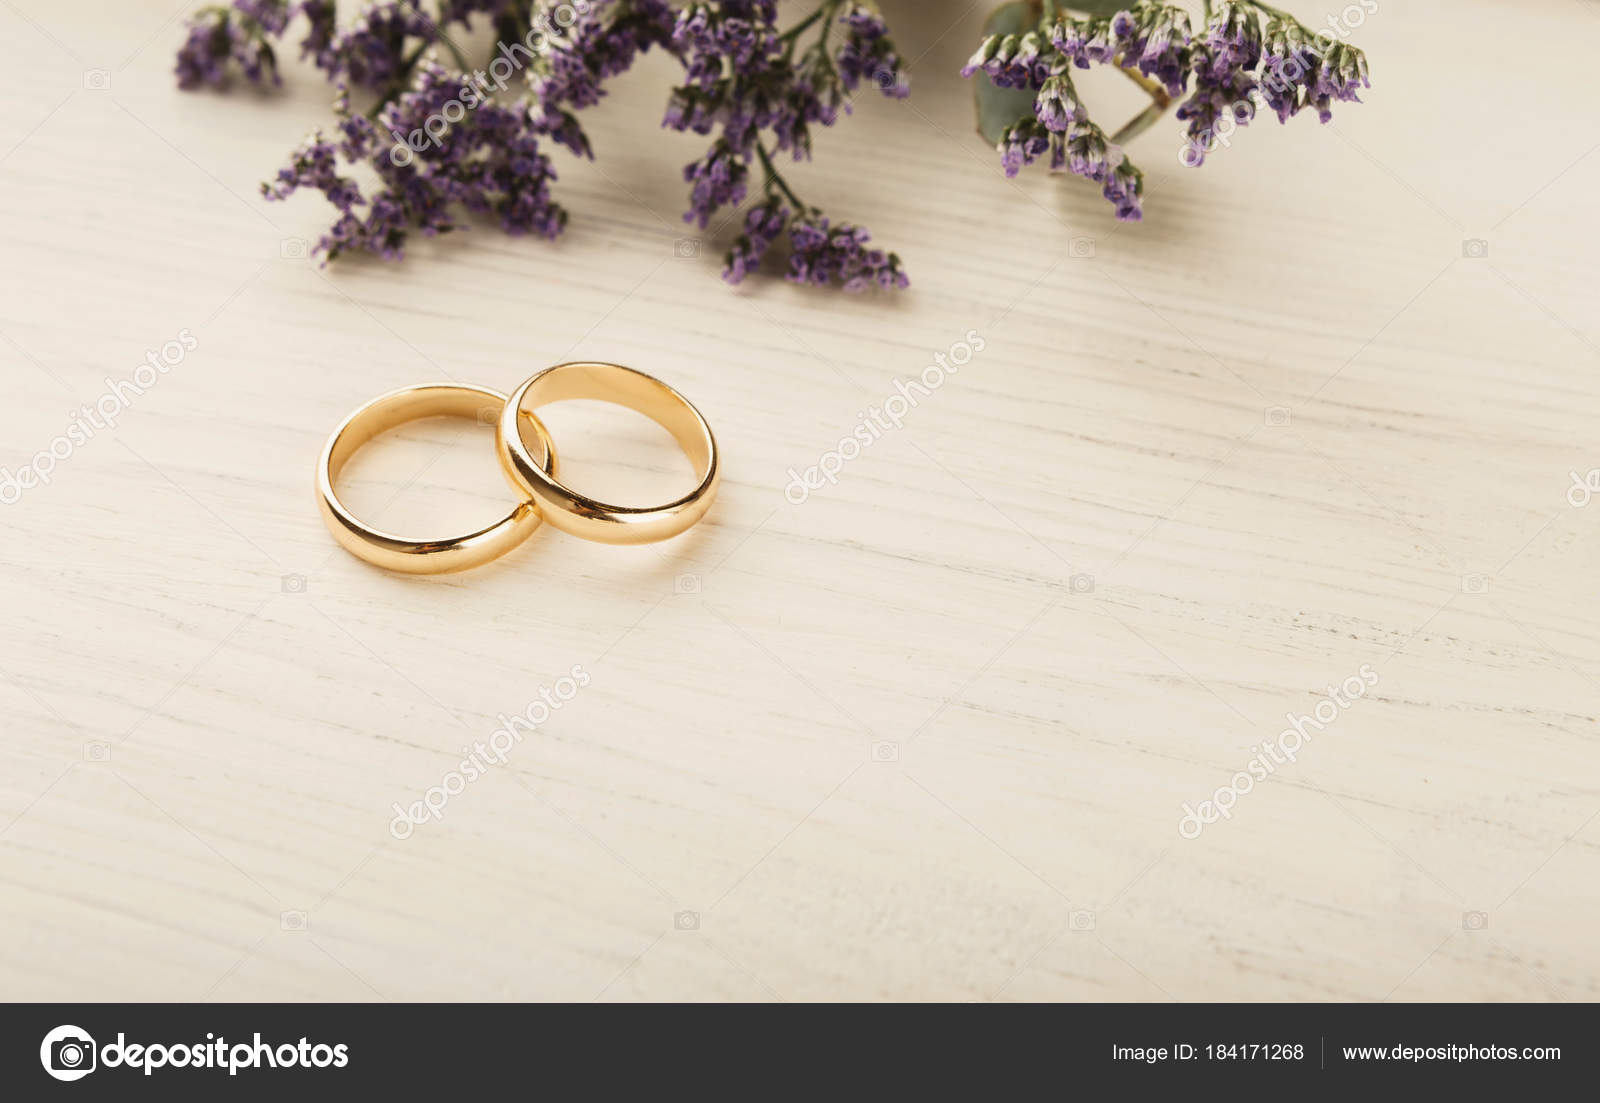 Two Golden Wedding Rings With Flower Decorations Stock